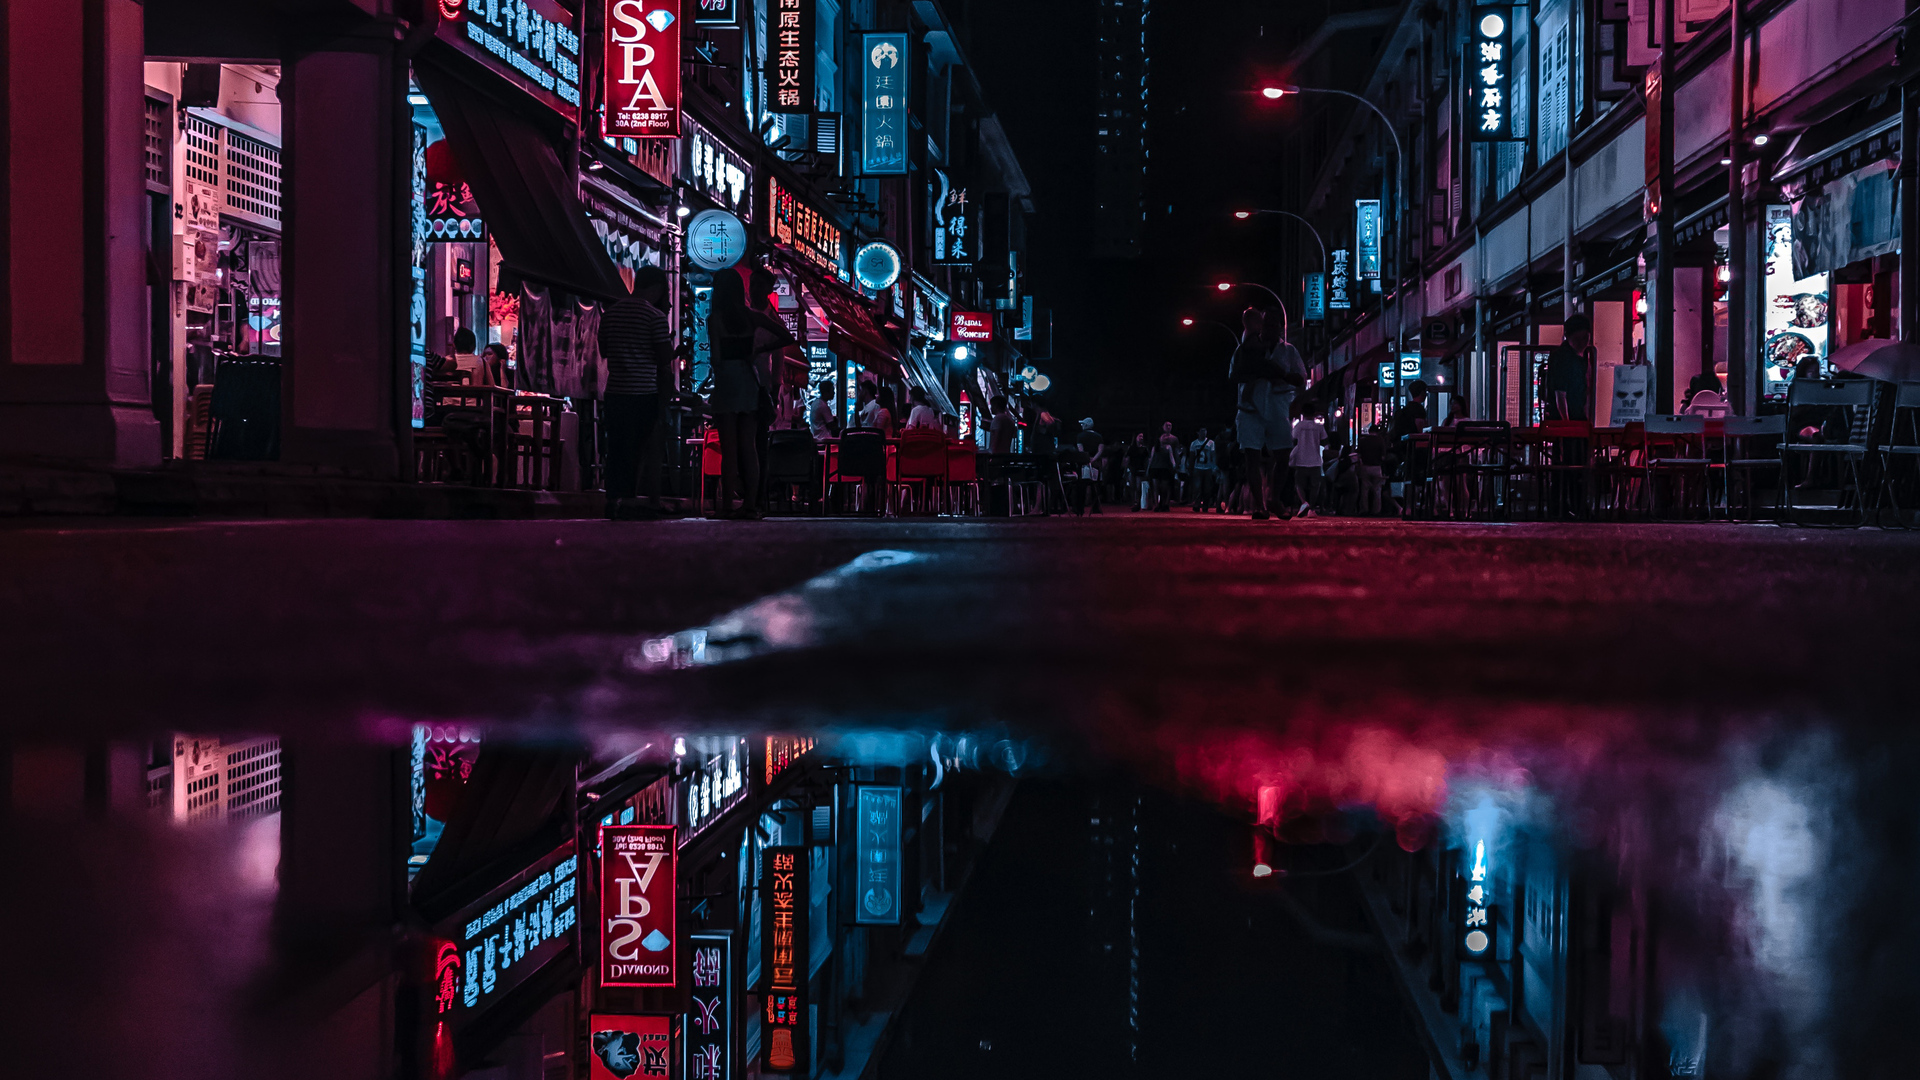 1920x1080 Asia Neon City Lights Reflections Laptop Full Hd